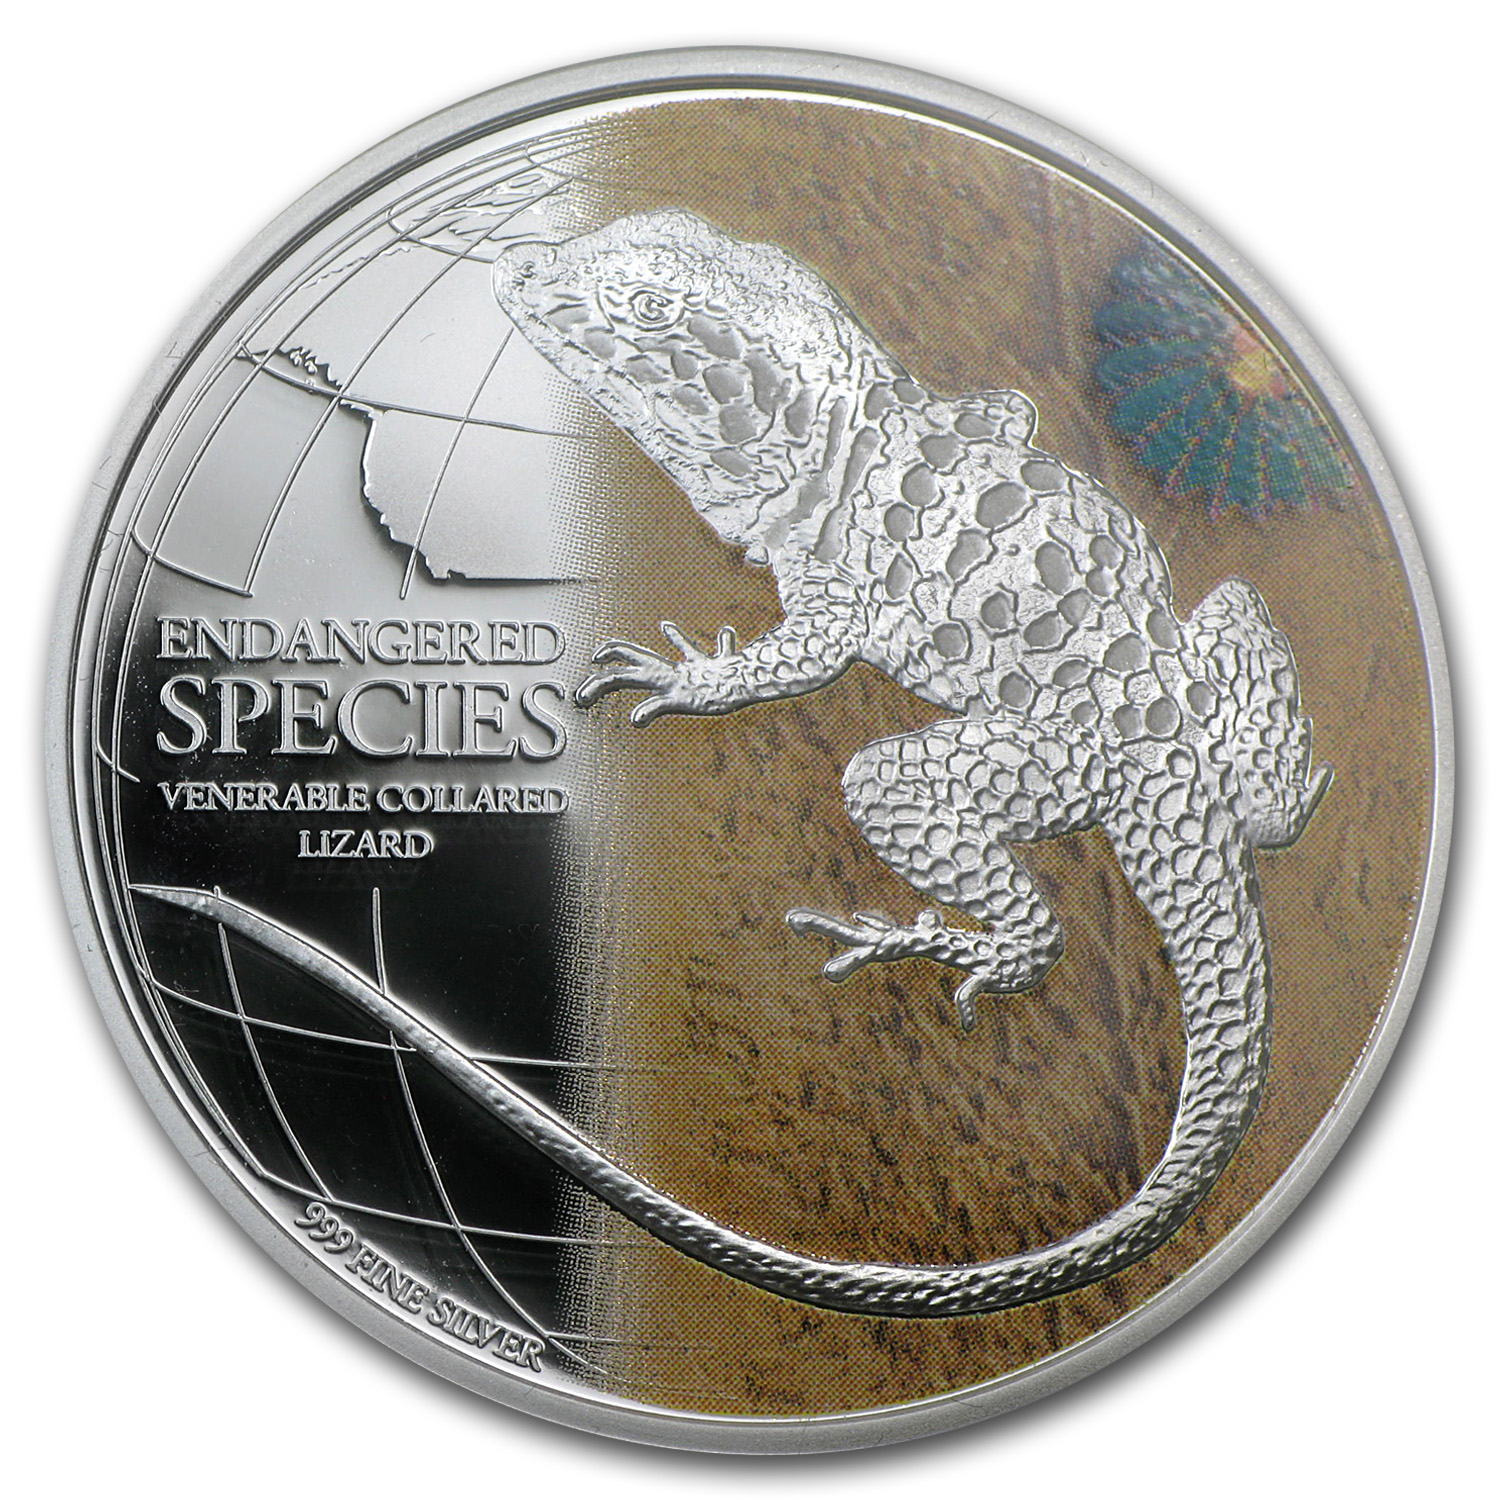 2013 Niue 1 oz Silver Venerable Collared Lizard Proof